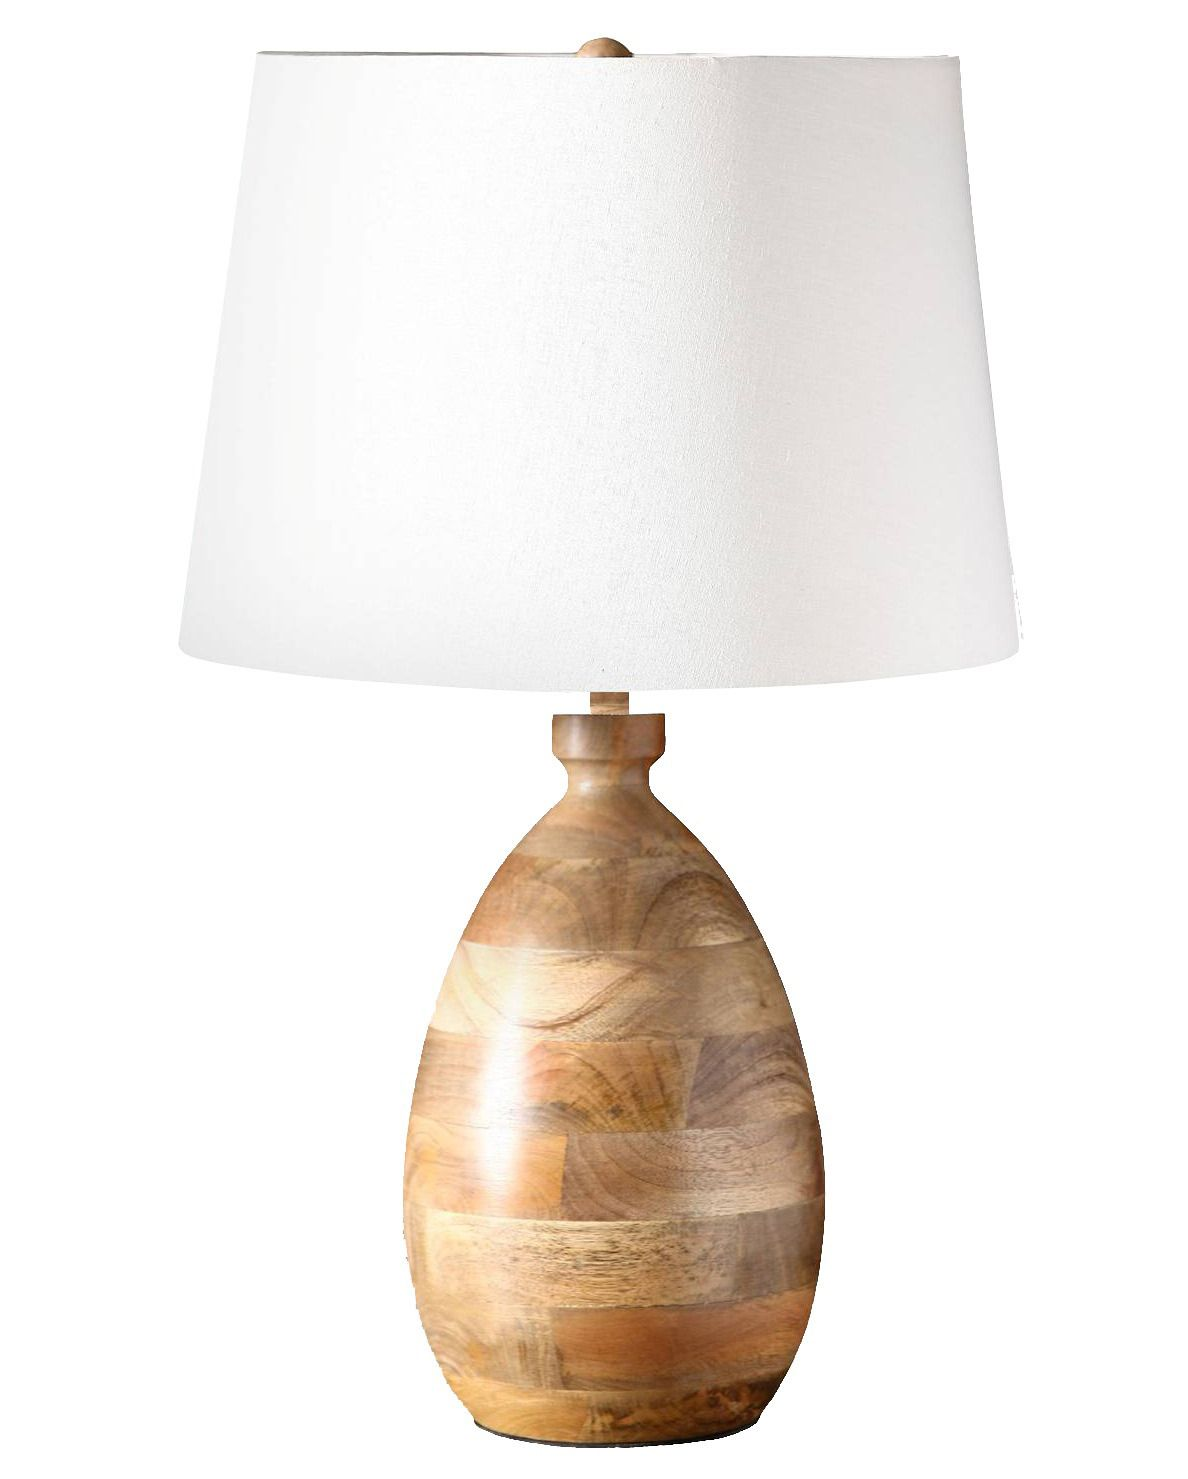 Agathe table lamp ren wil home gallery stores watts up nanna table lamp natural table lamps indoor and outdoor lighting lighting geotapseo Gallery